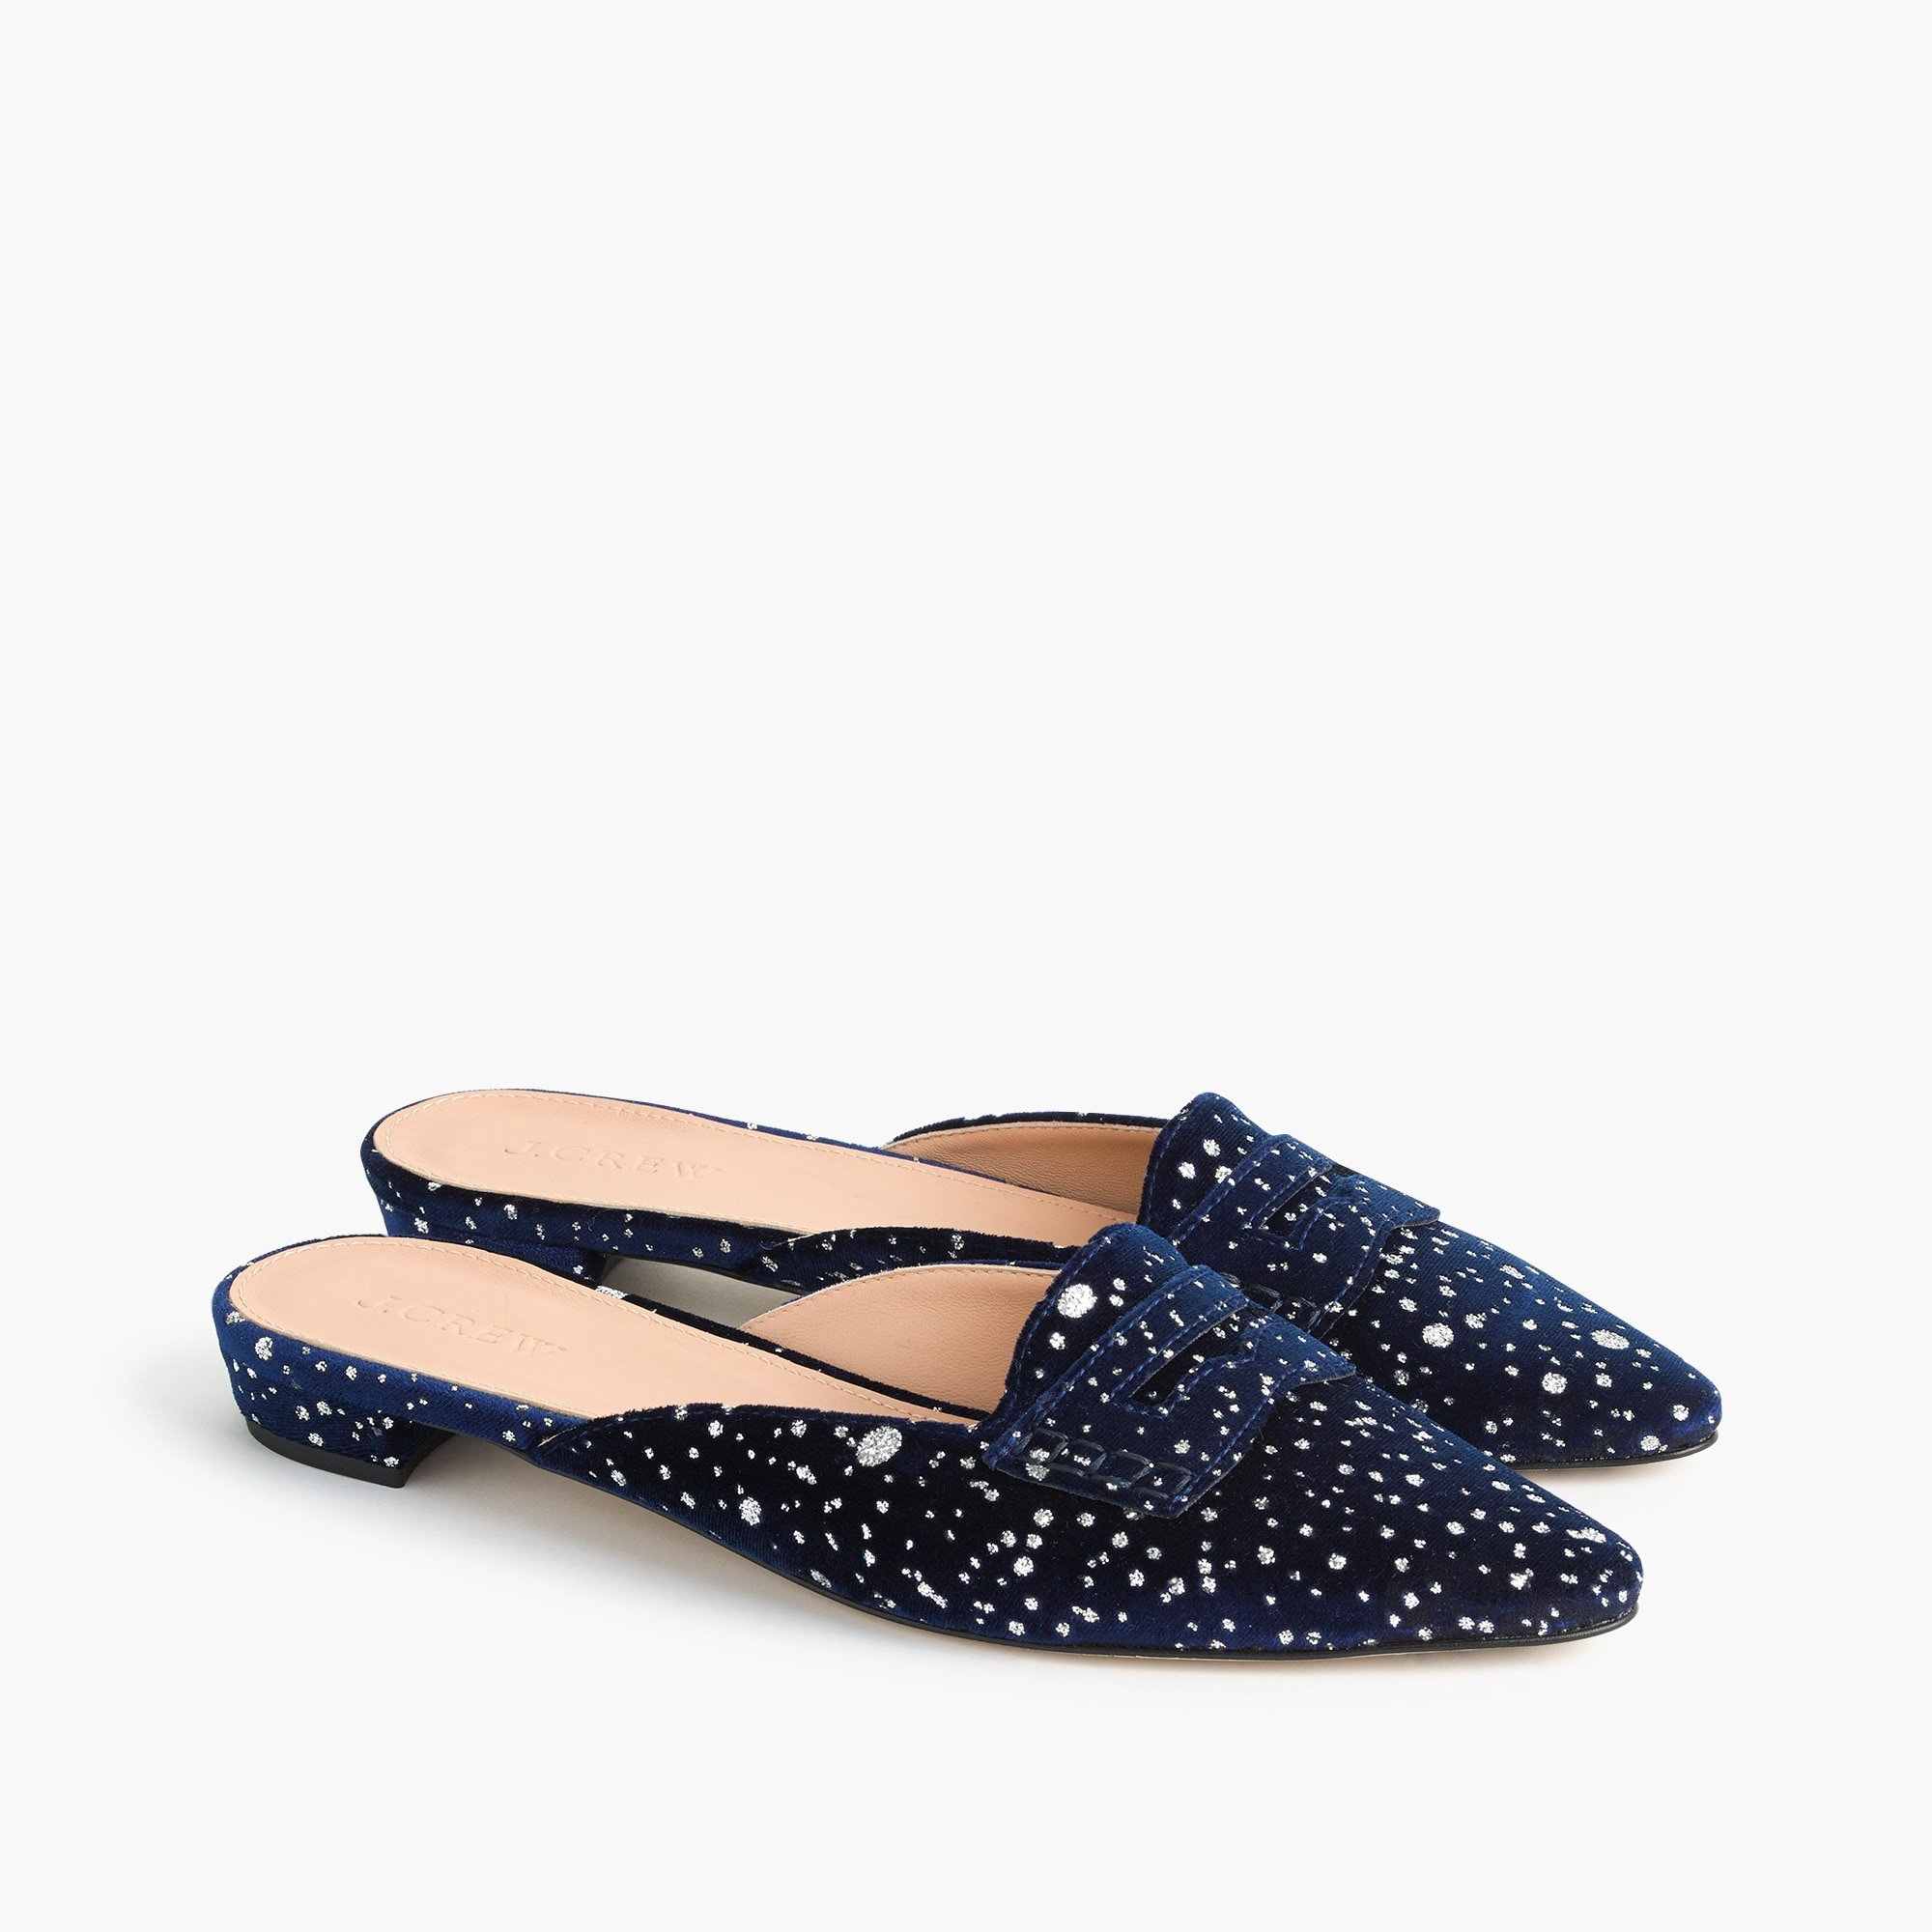 Glitter speckled velvet loafer mules